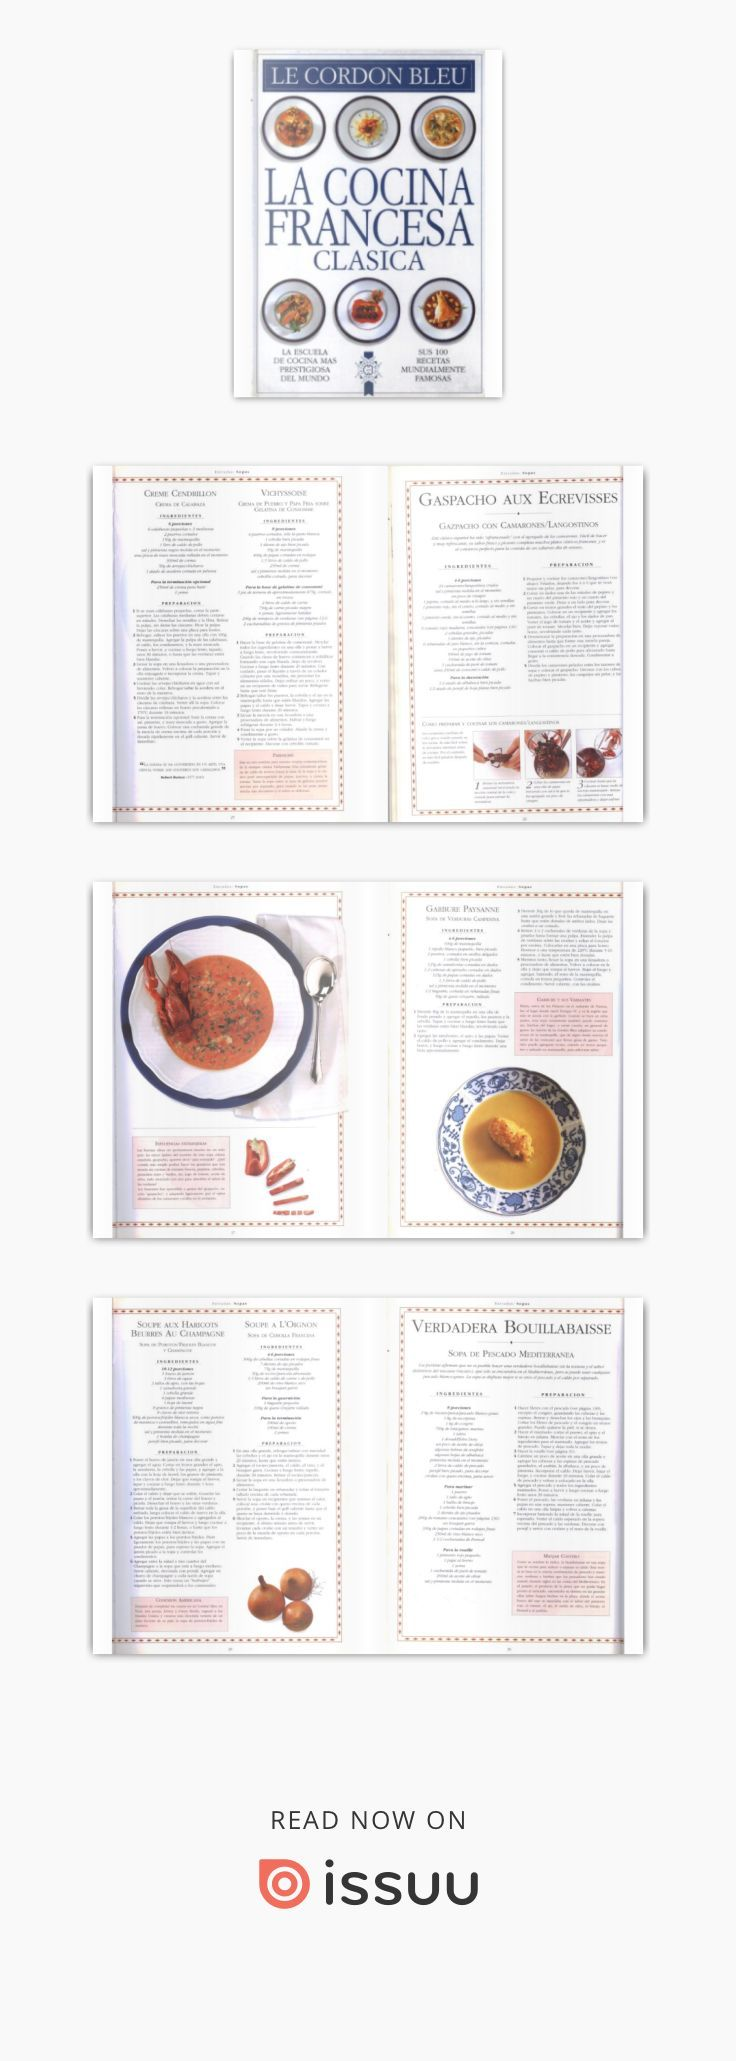 Issuu is a digital publishing platform that makes it simple to publish magazines, catalogs, newspapers, books, and more online. Easily share your publications and get them in front of Issuu's millions of monthly readers. Title: Le Cordon bleu cocina francesa clasica, Author: Jana Coelho, Name: Le Cordon bleu cocina francesa clasica, Length: 169 pages, Page: 1, Published: 2017-11-13